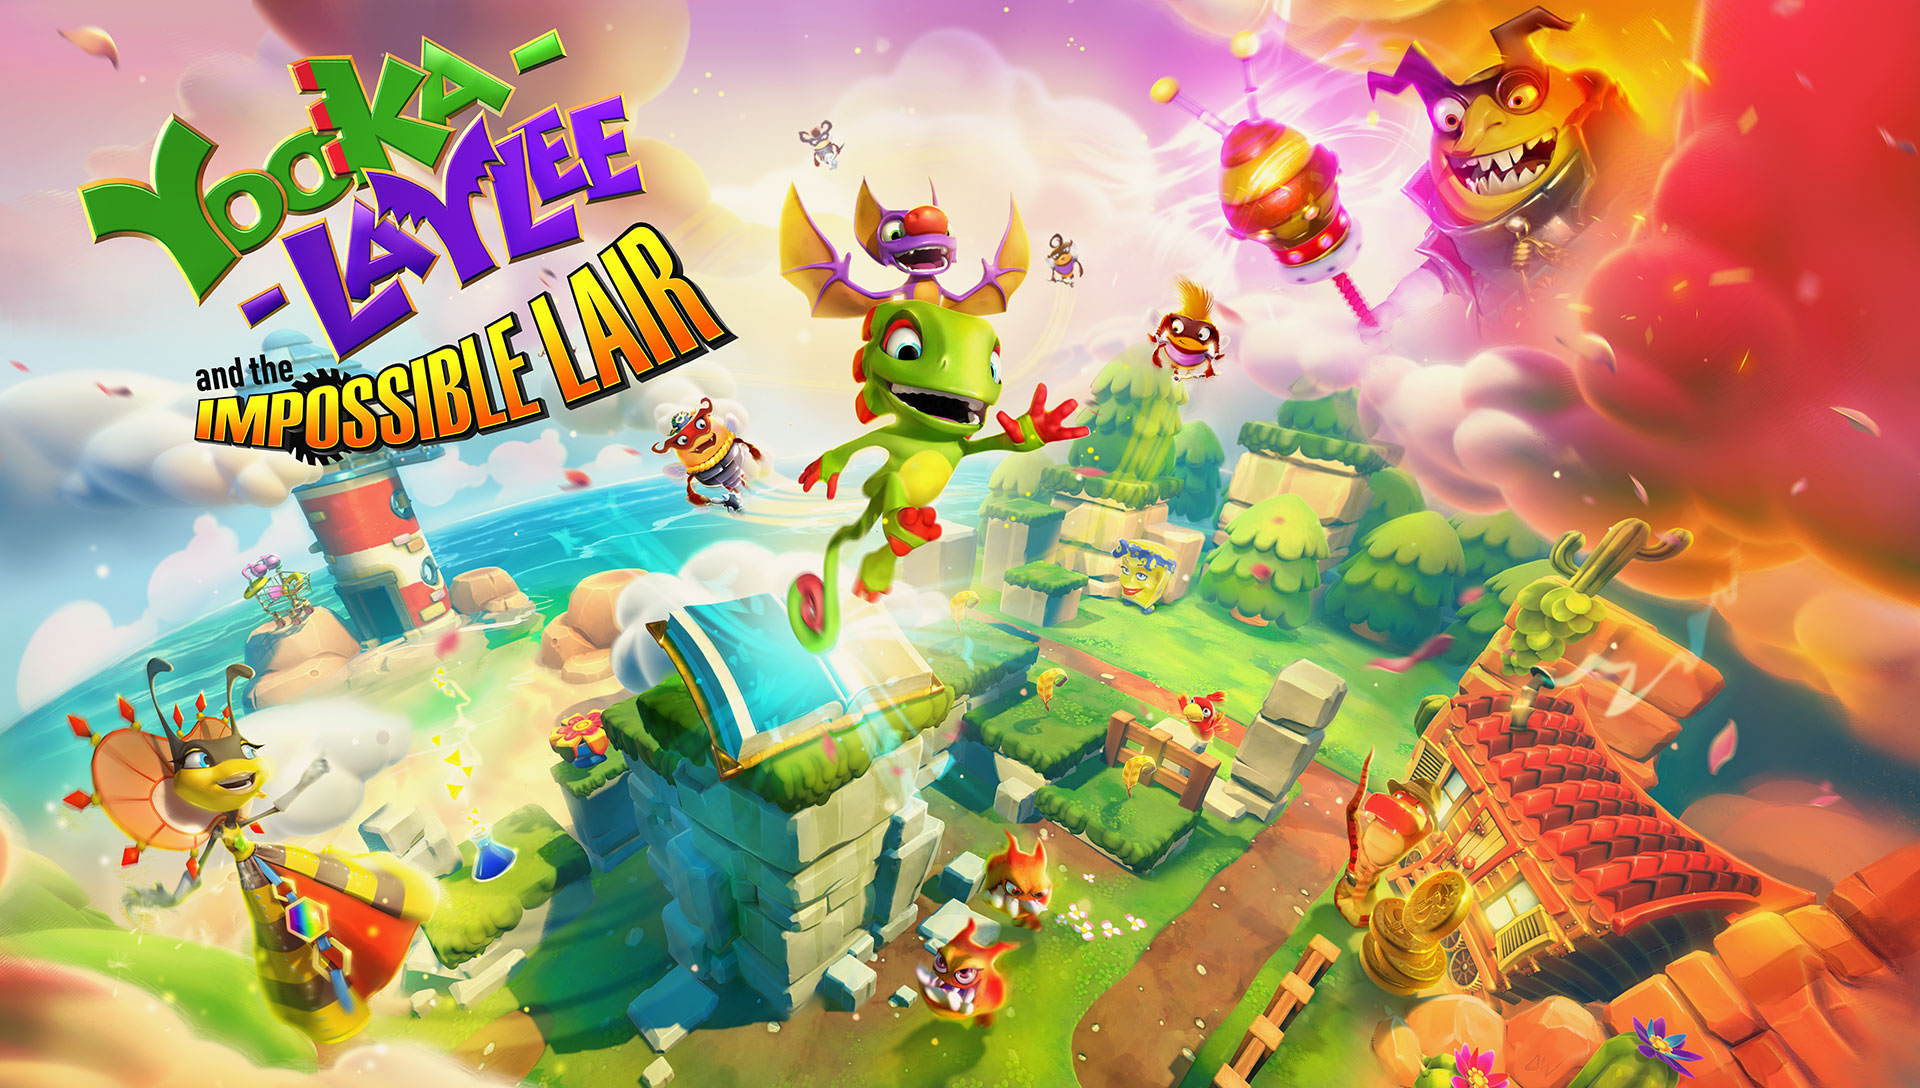 Yooka-Laylee And The Impossible Lair Now Has A Release Date, More Details Are Slowly Being Revealed Along With Prices And Pre-Order Information